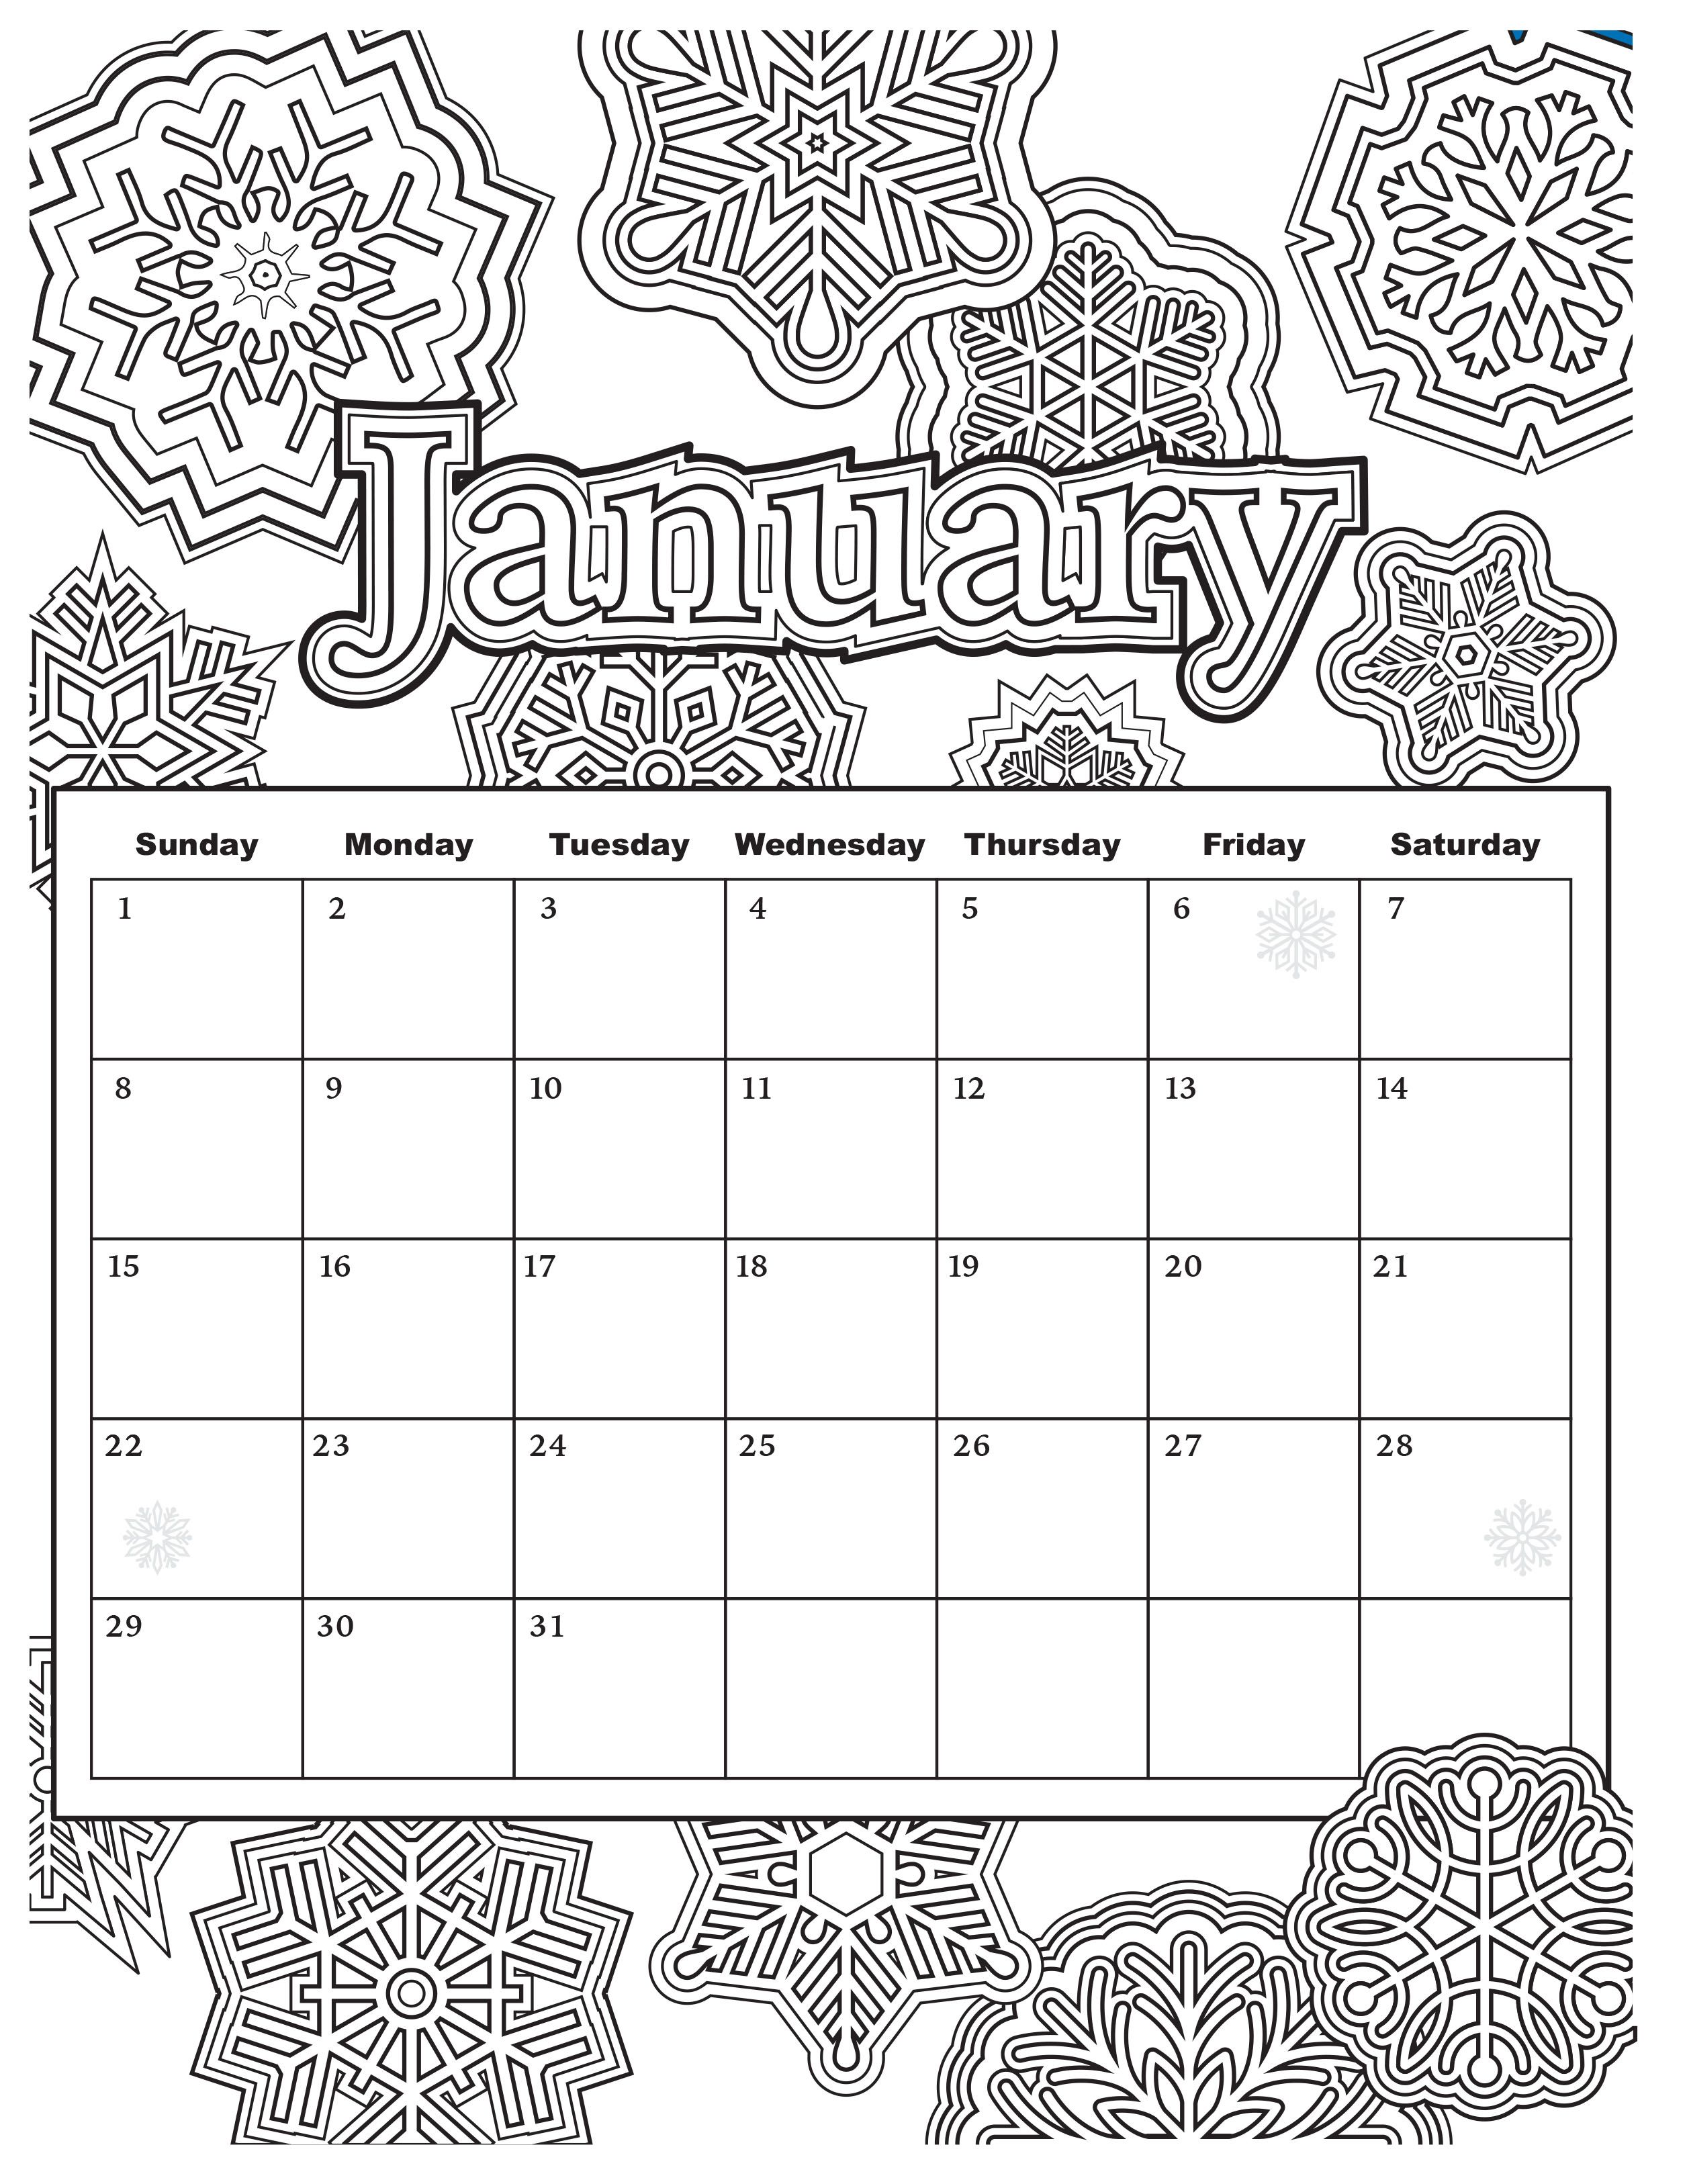 Free Download Coloring Pages From Popular Adult Coloring Books Online Coloring Pages Free Online Coloring Coloring Pages